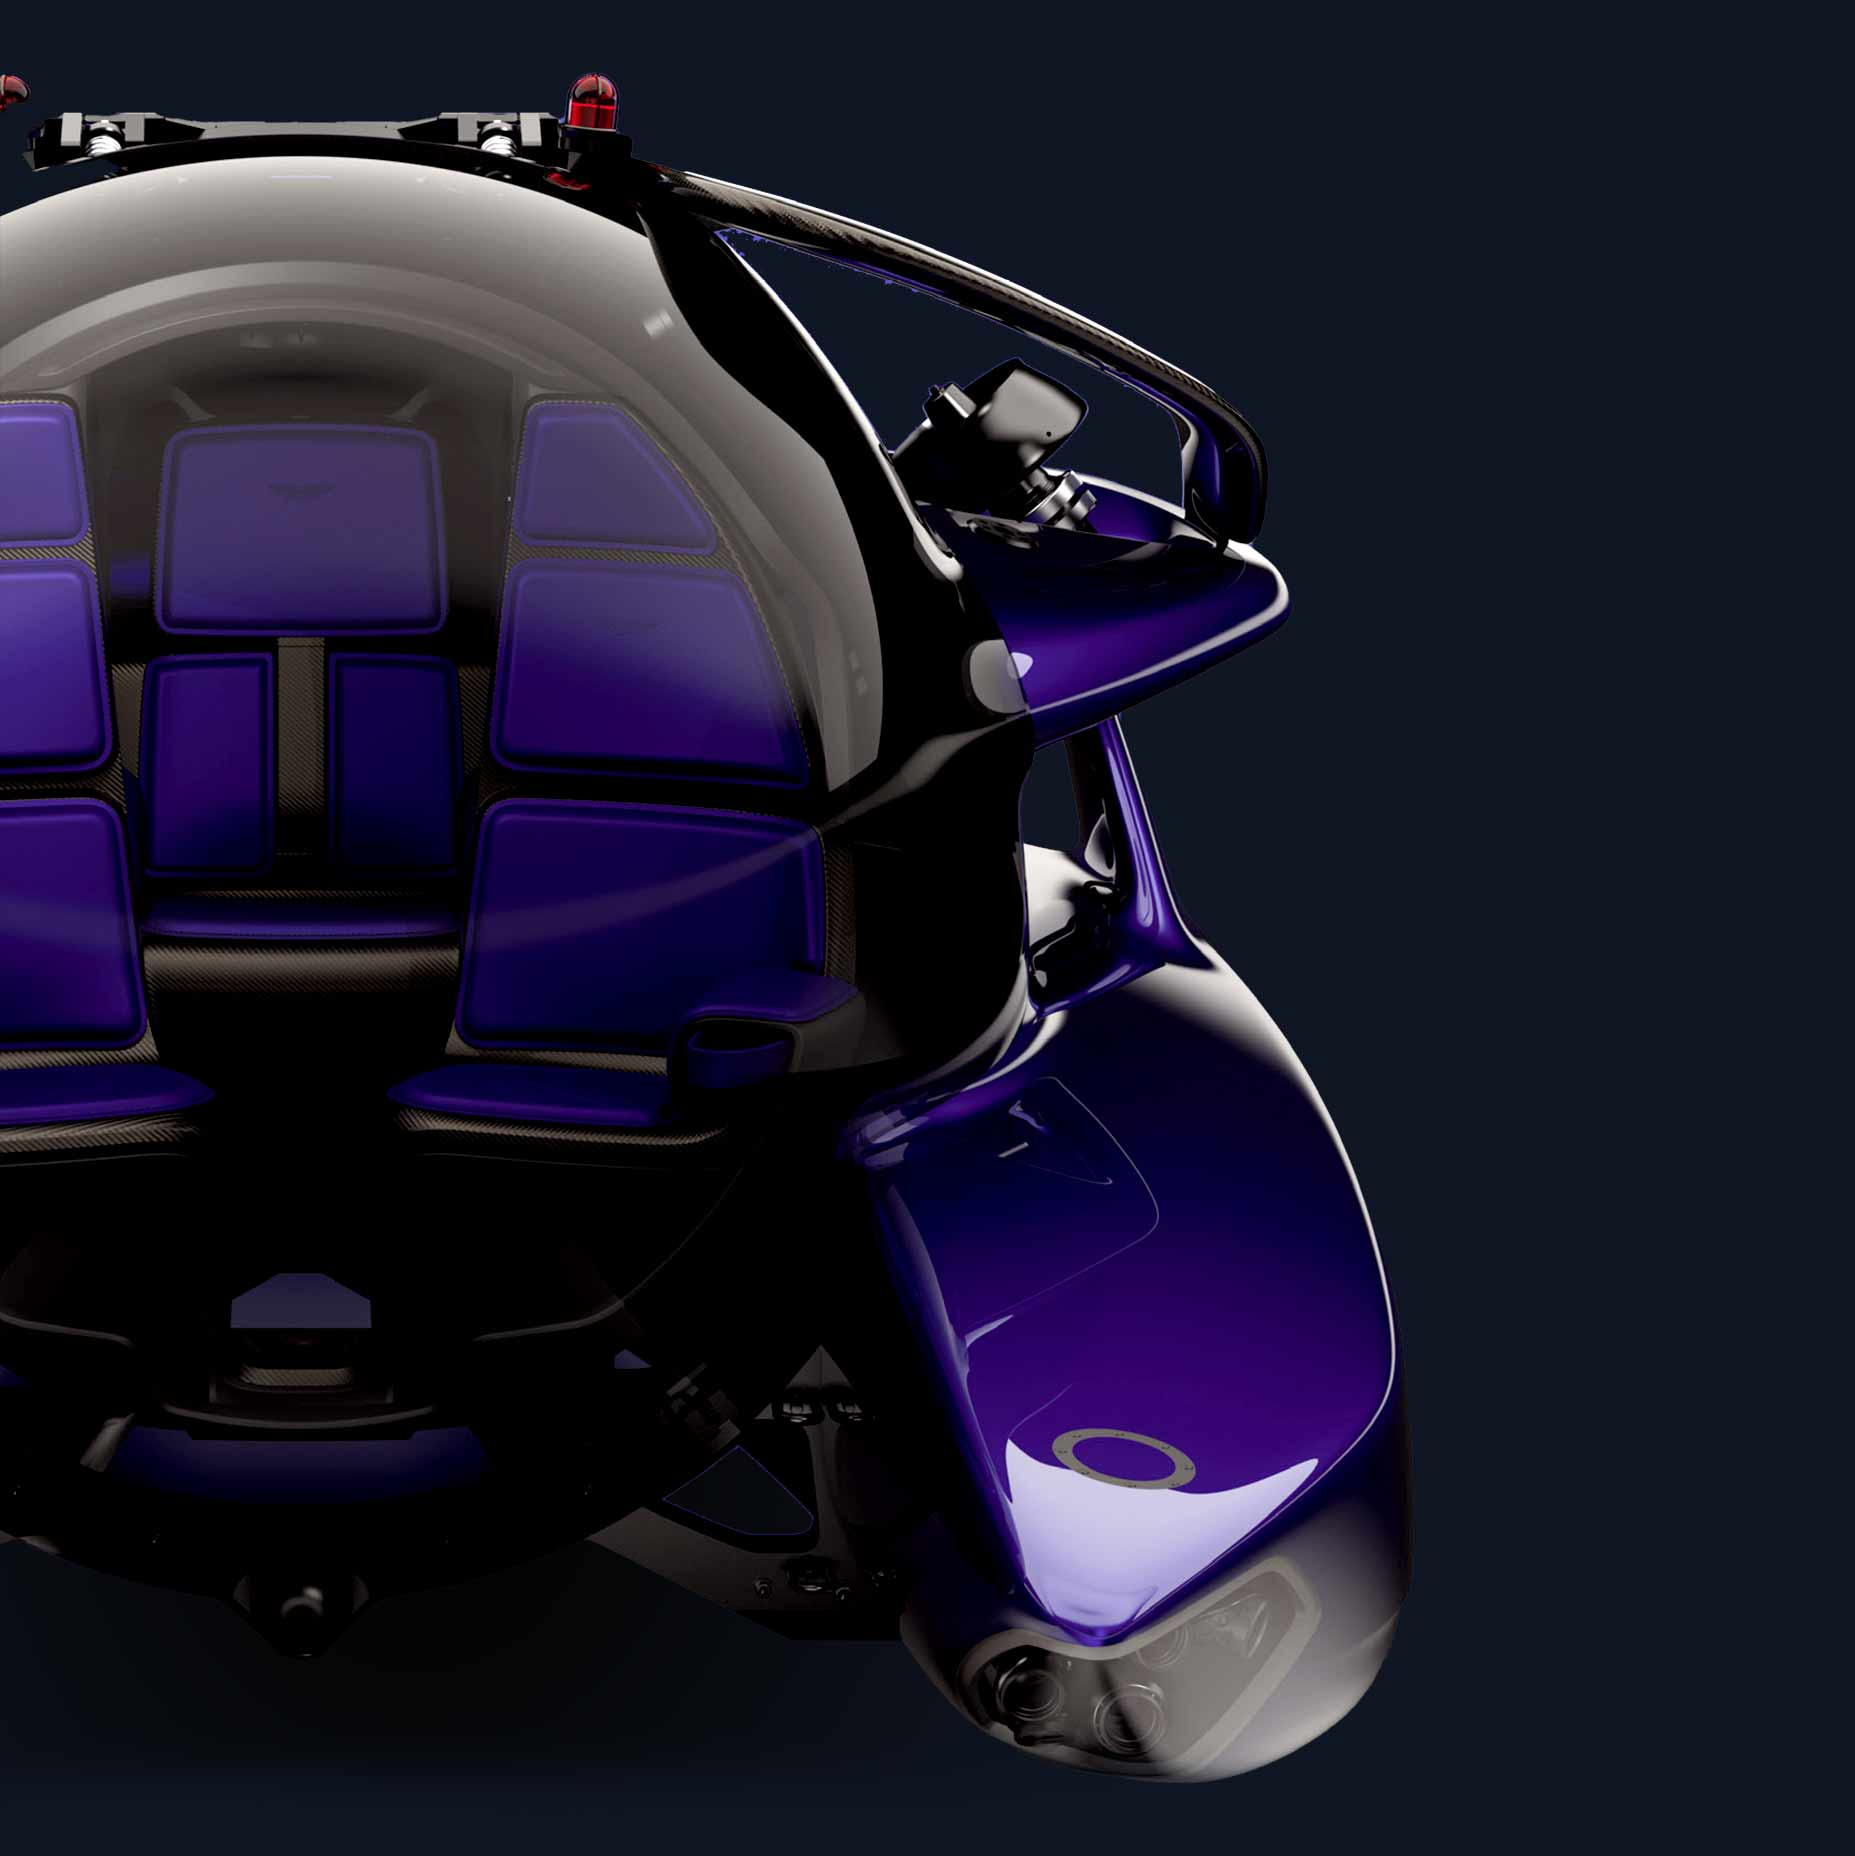 The front of Project Neptune, showing the large acrylic sphere and luxurious interior